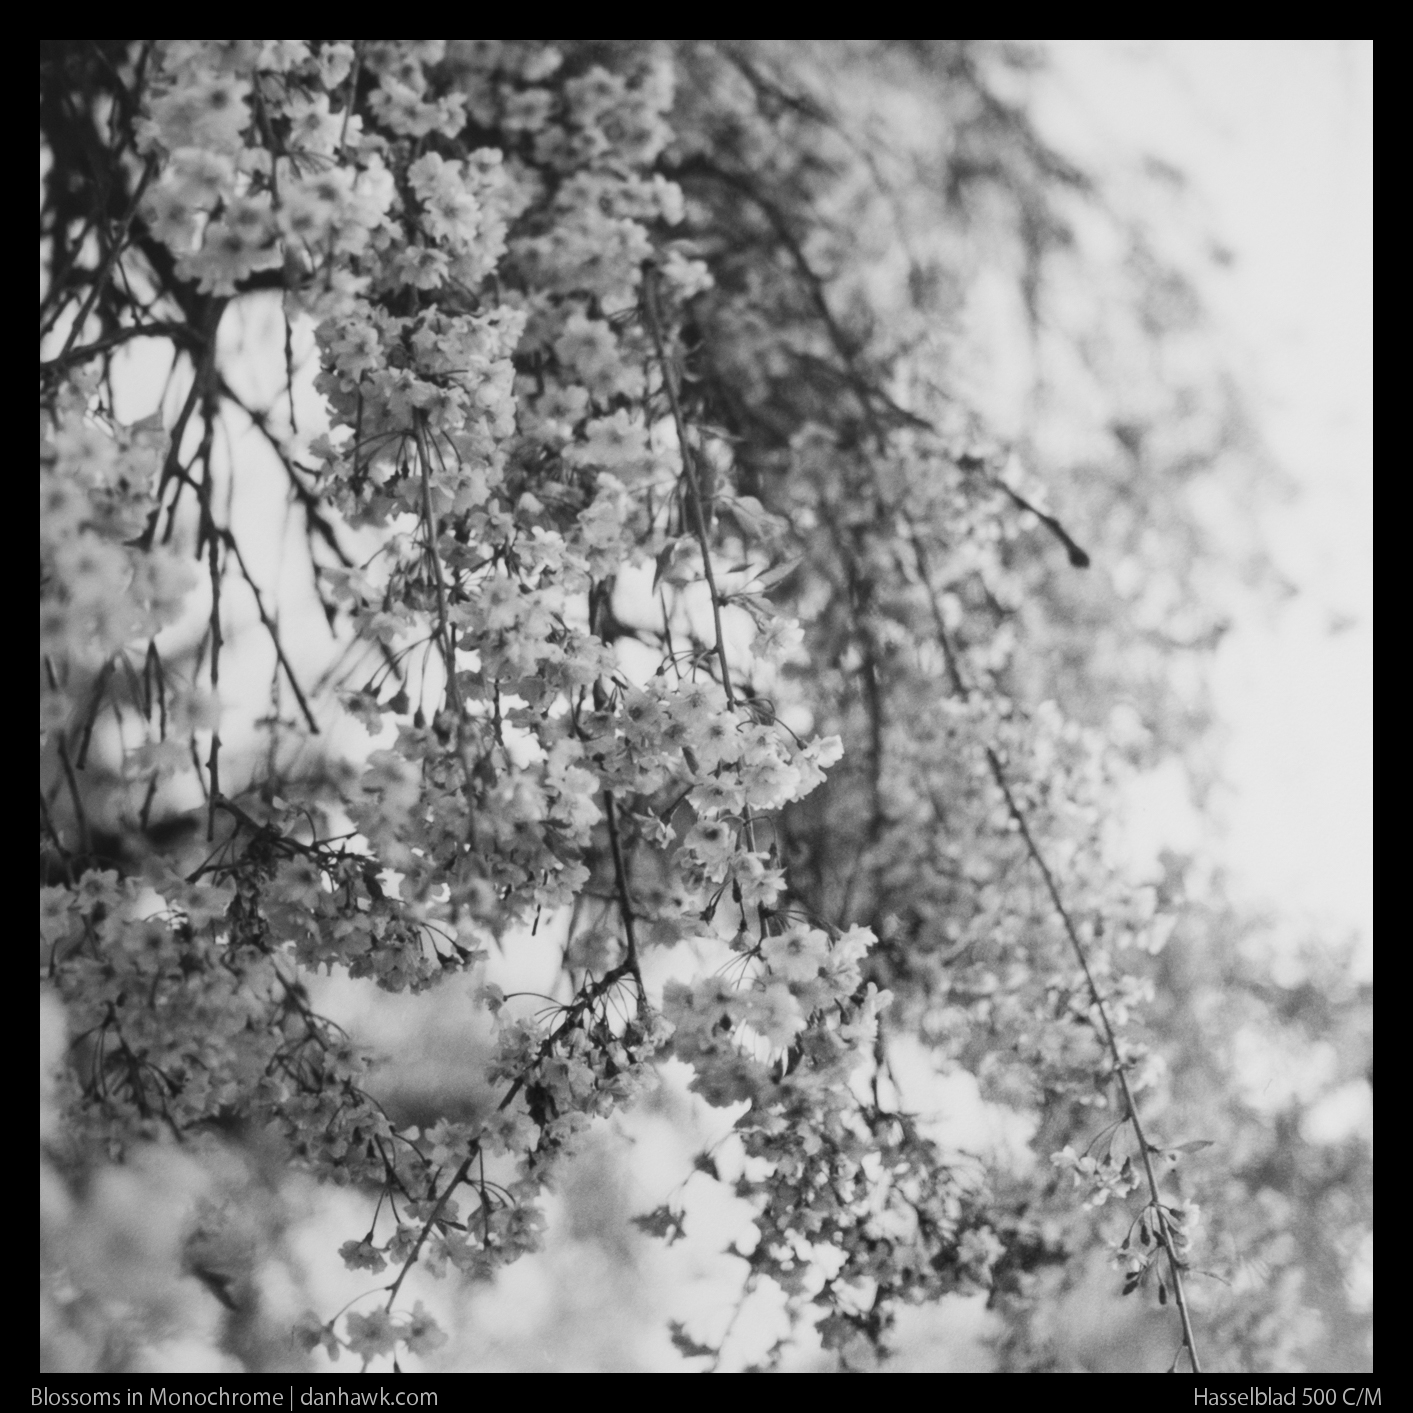 Blossoms in Monochrome